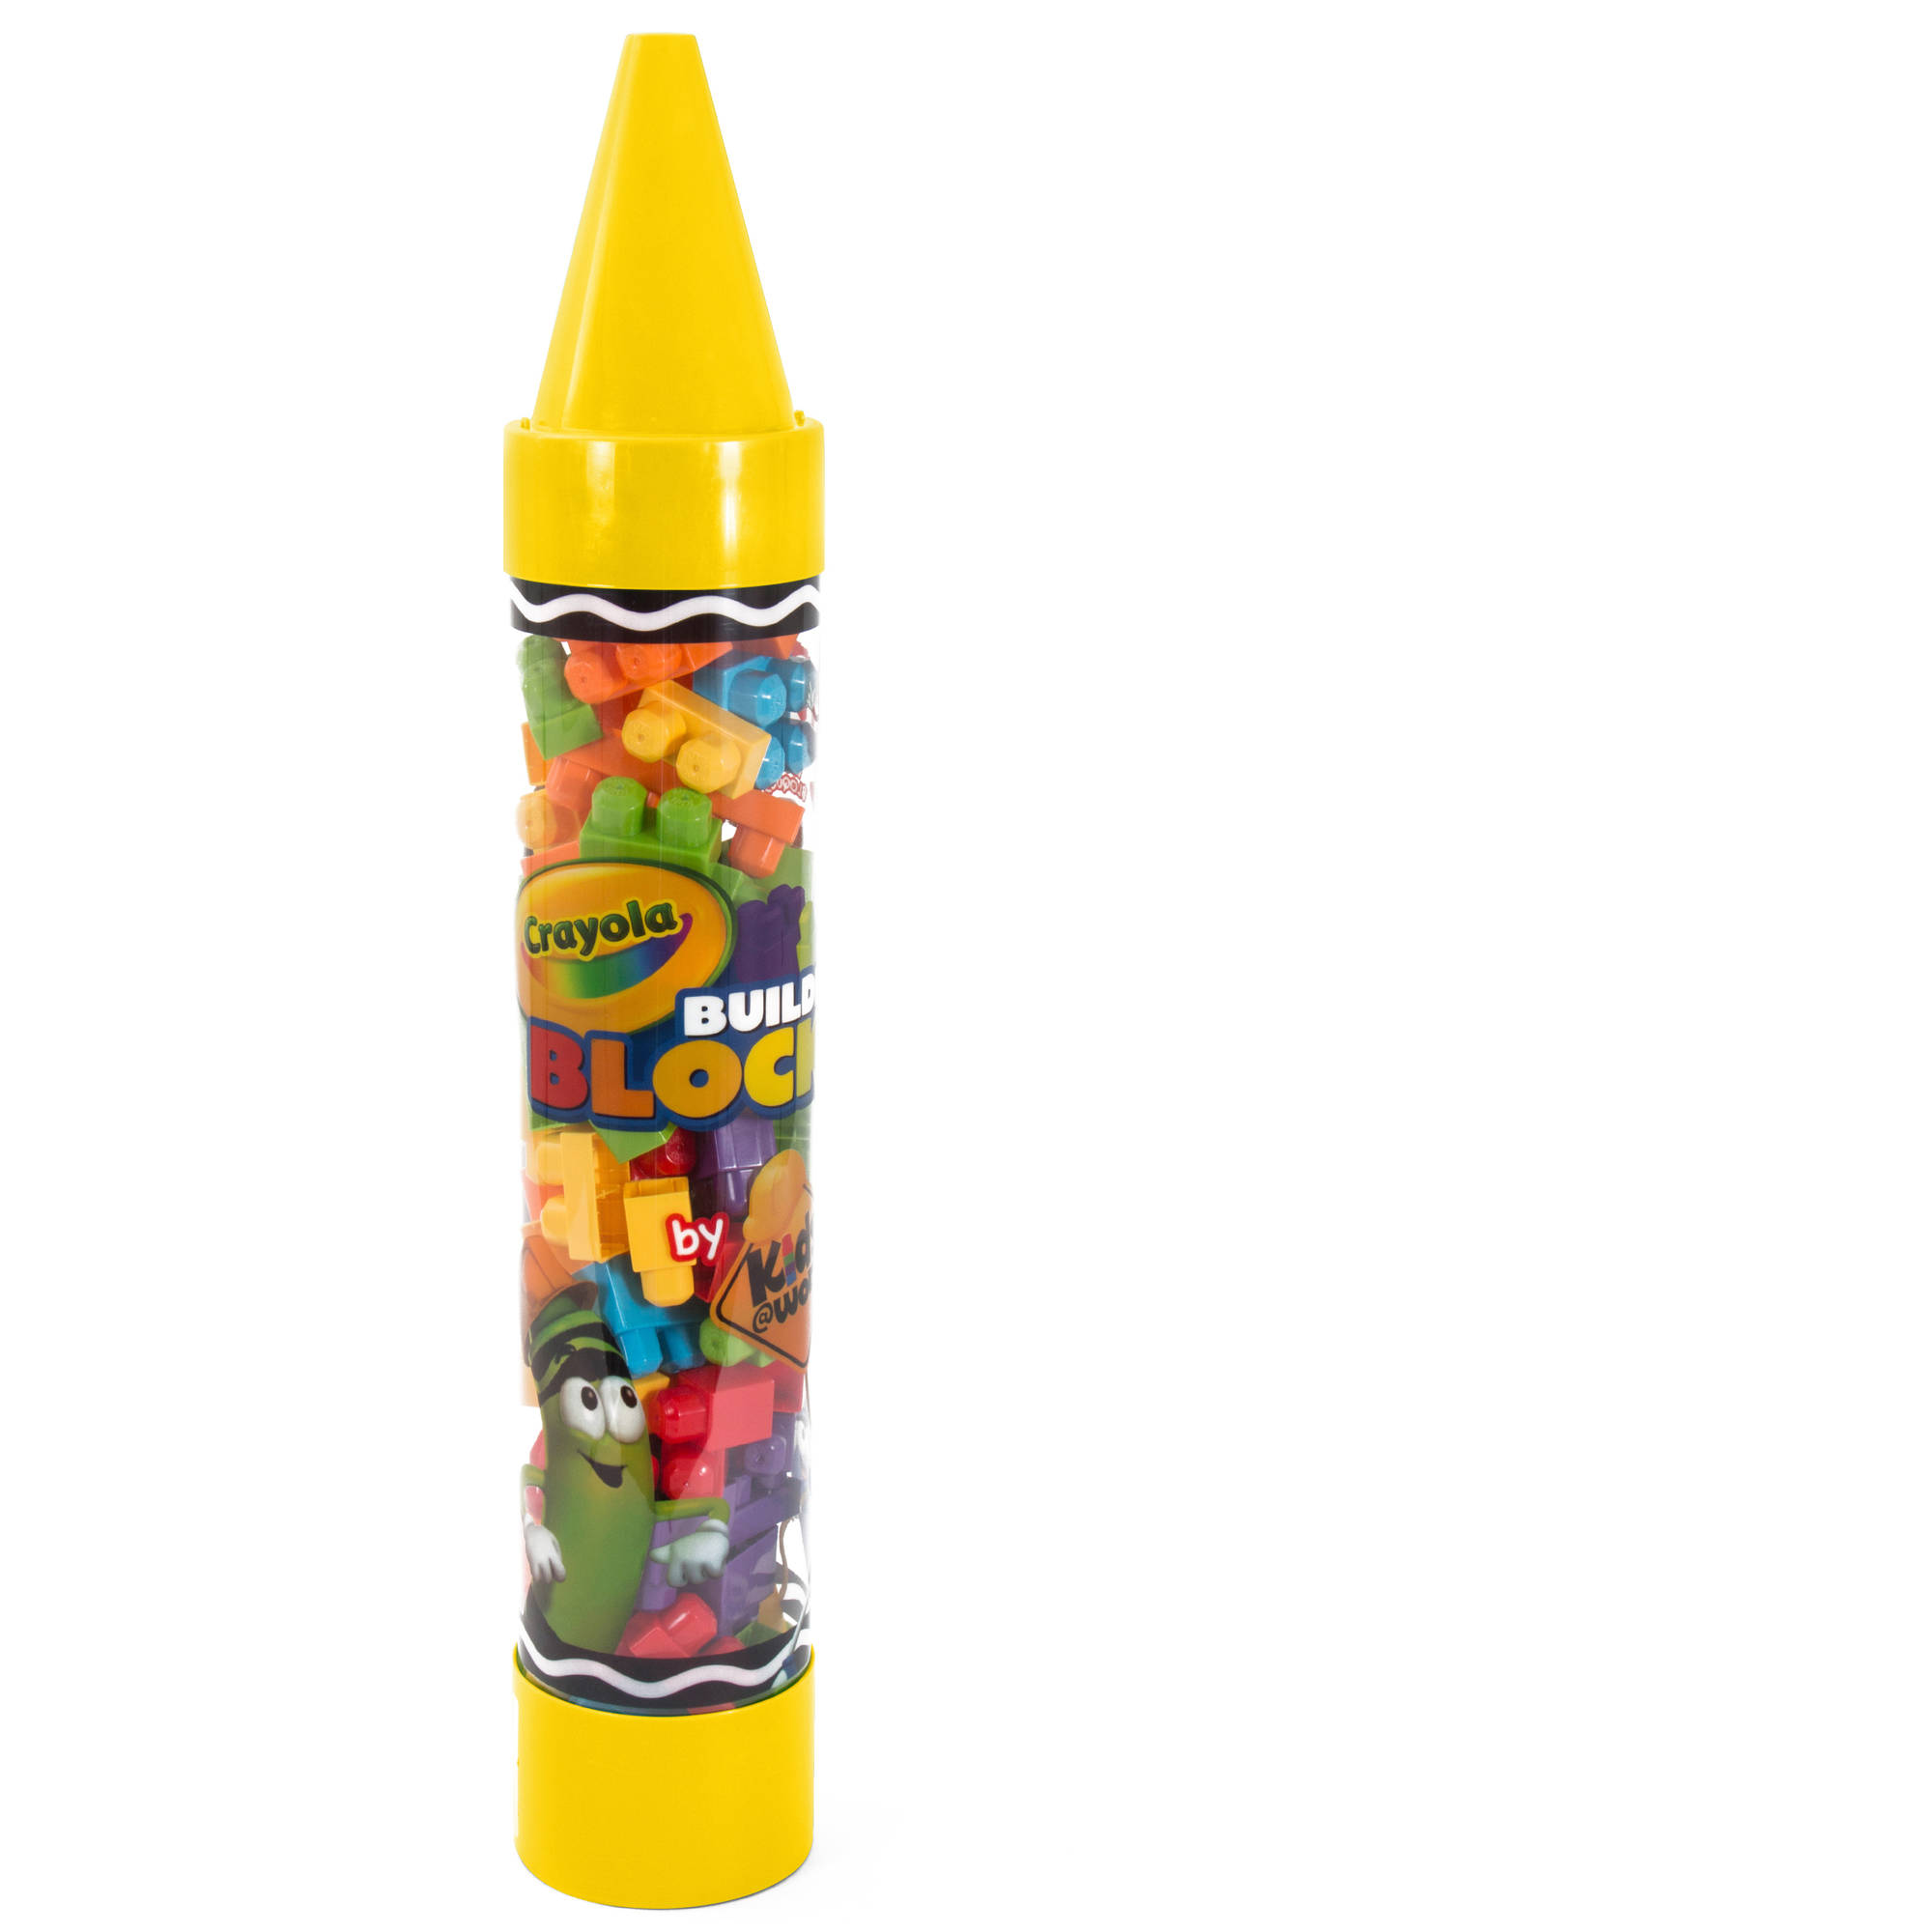 """Crayola Kids@Work 80-Piece Blocks in 36"""" Giant Crayon Tube, Yellow by Amloid Corp."""